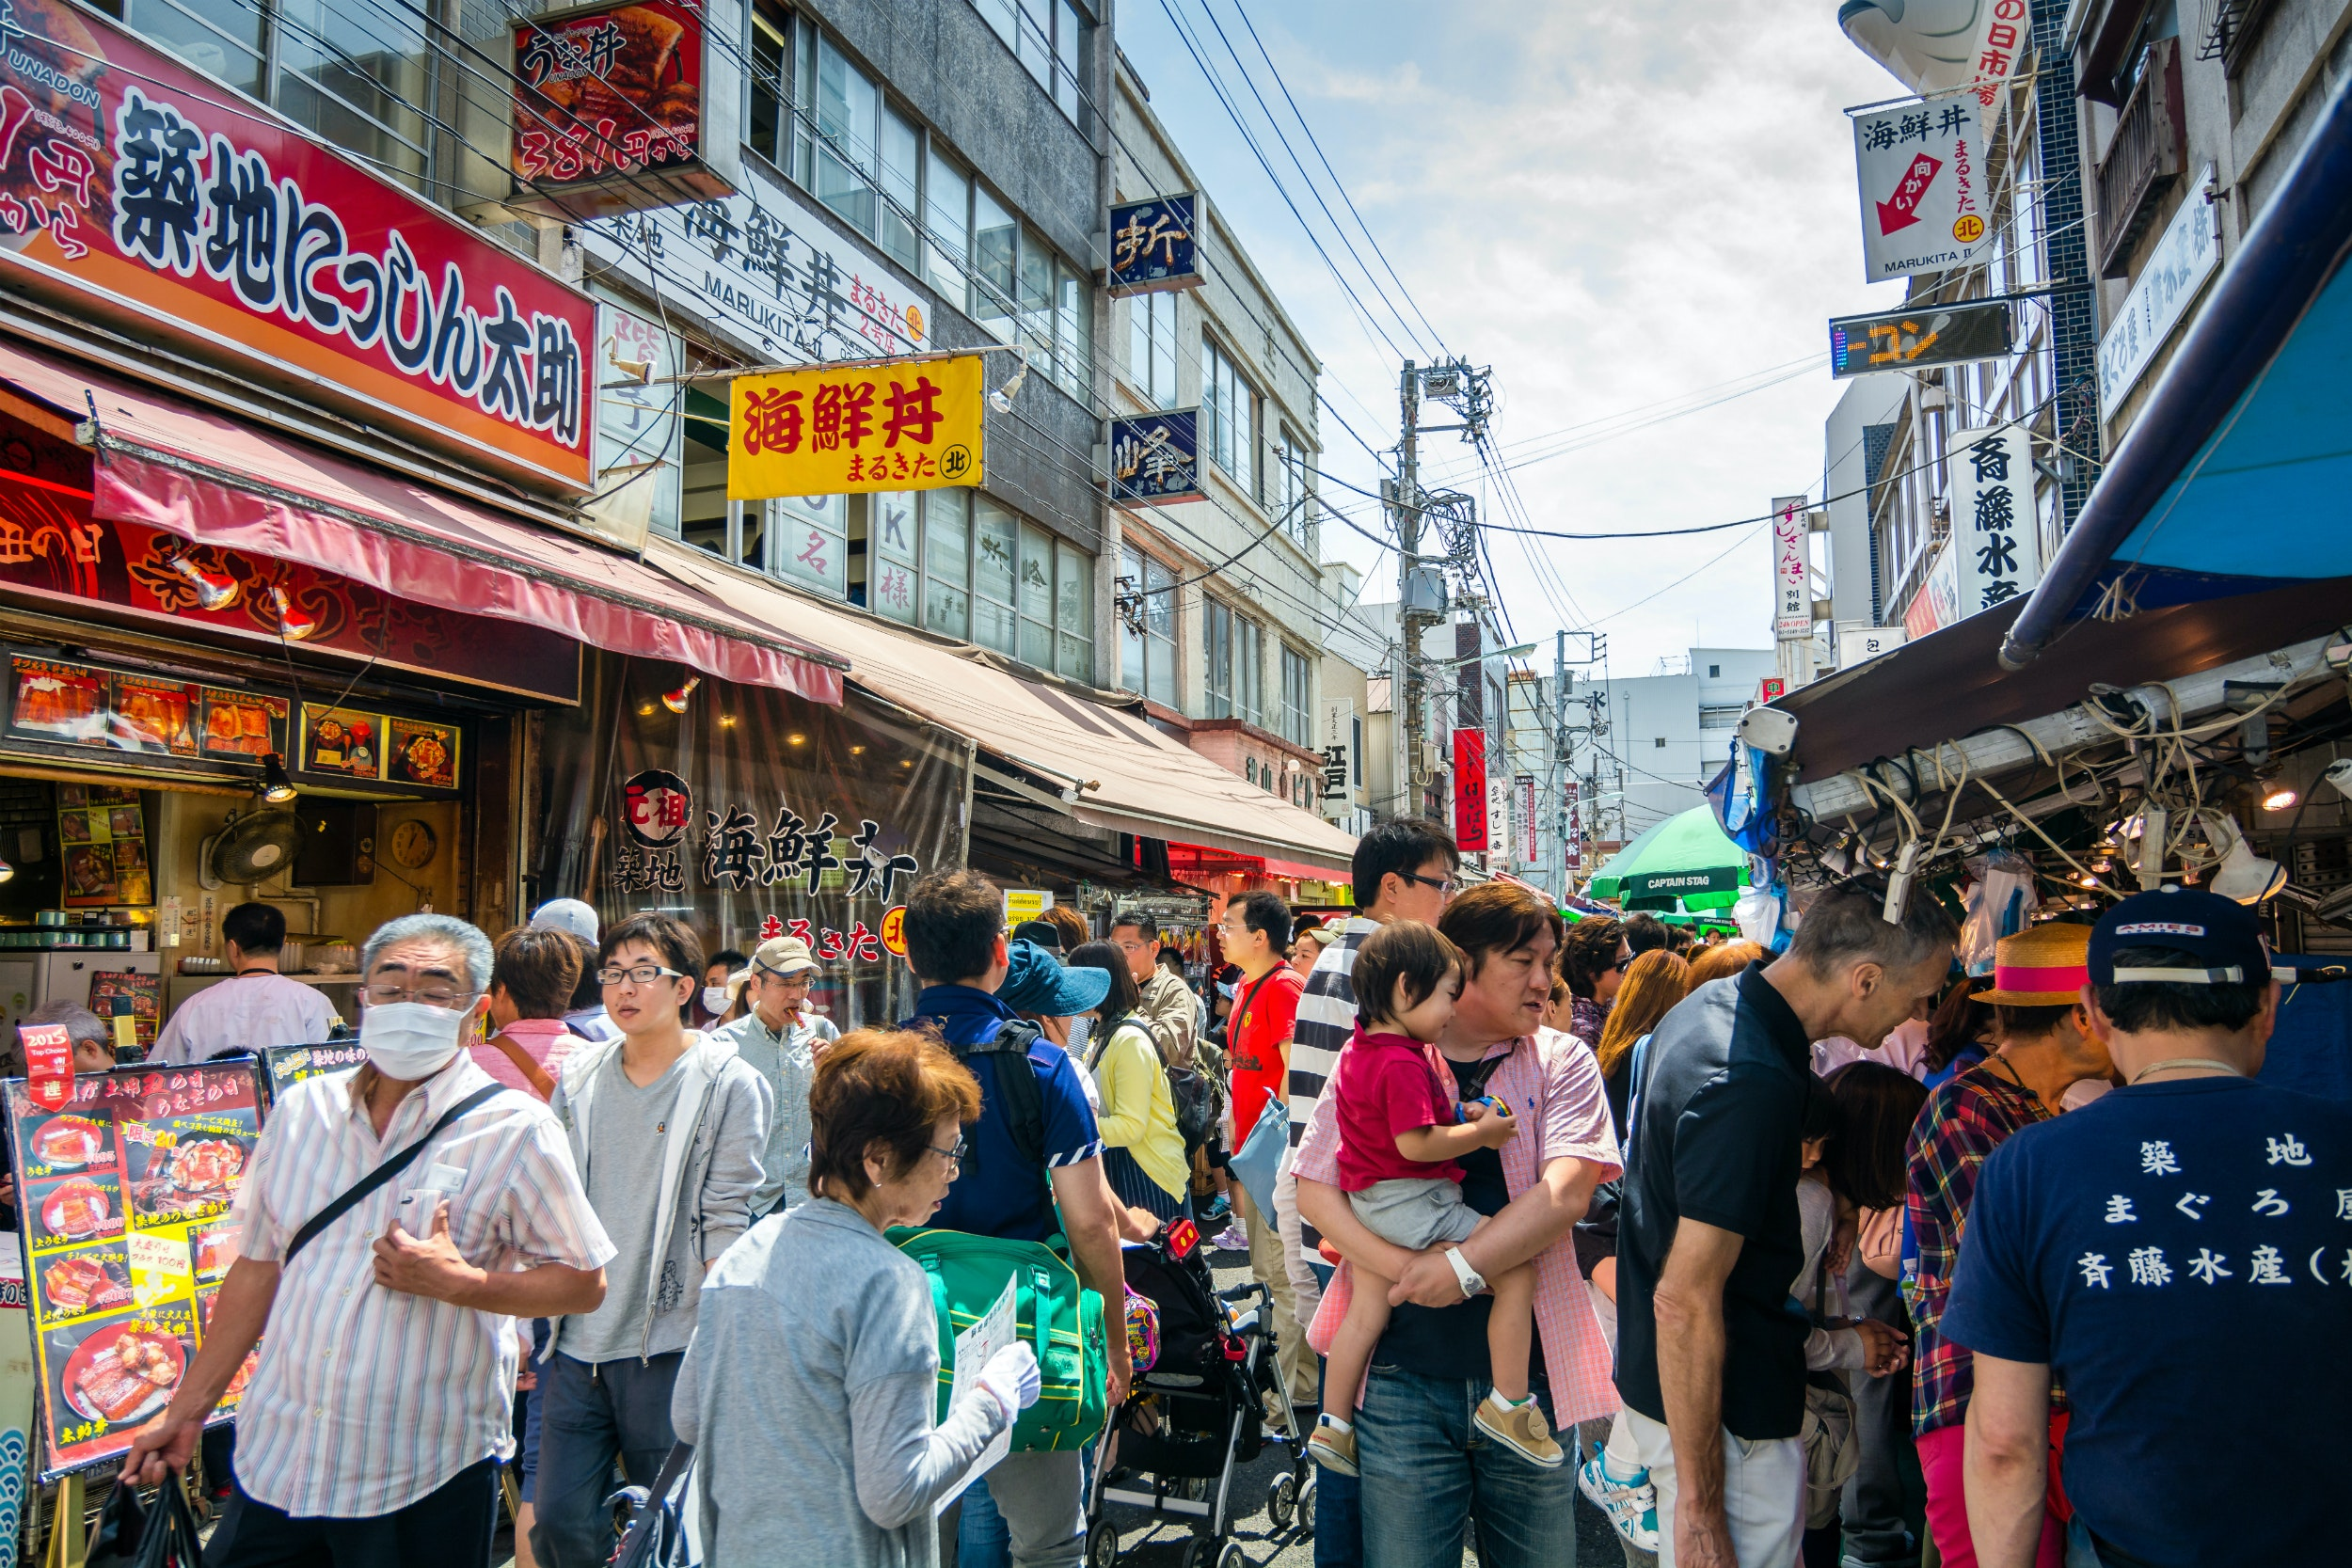 The atmospheric Outer Market (jōgai) will continue to operate near the old Tsukiji Market site.